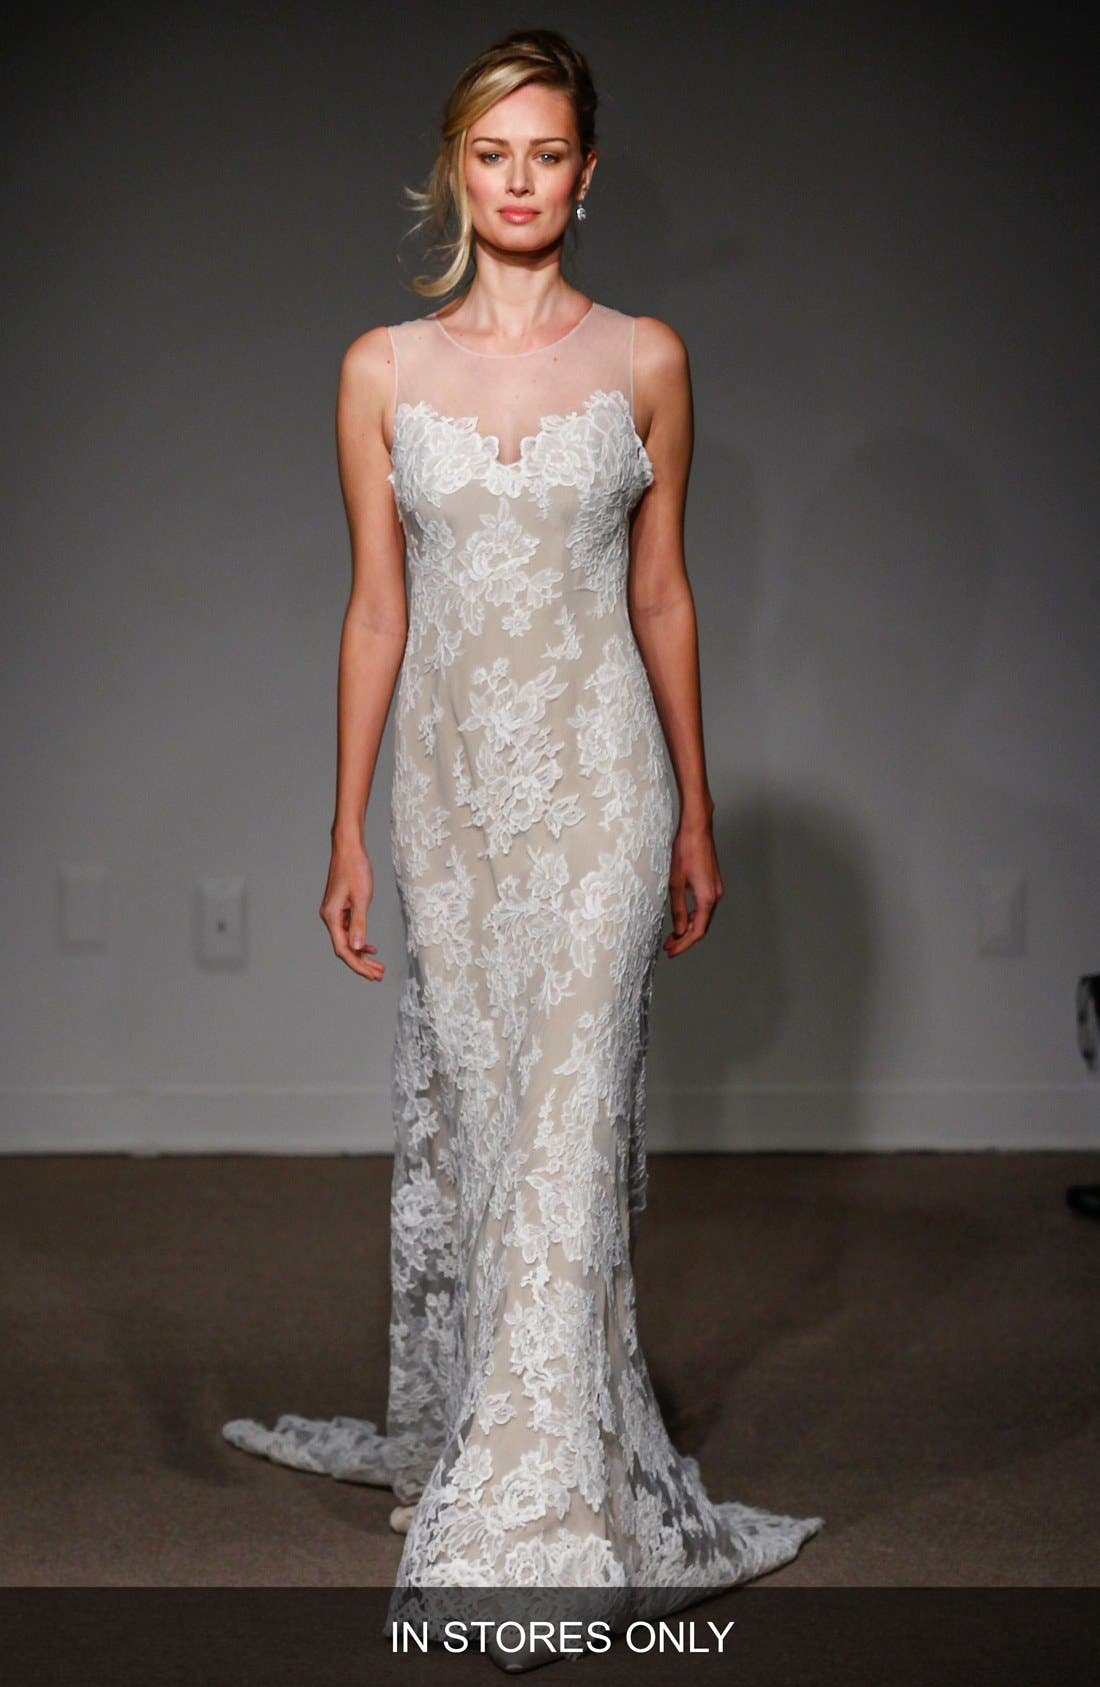 Anna Maier Couture Lola Illusion Neck Sleeveless Lace Column Gown (In Stores Only)